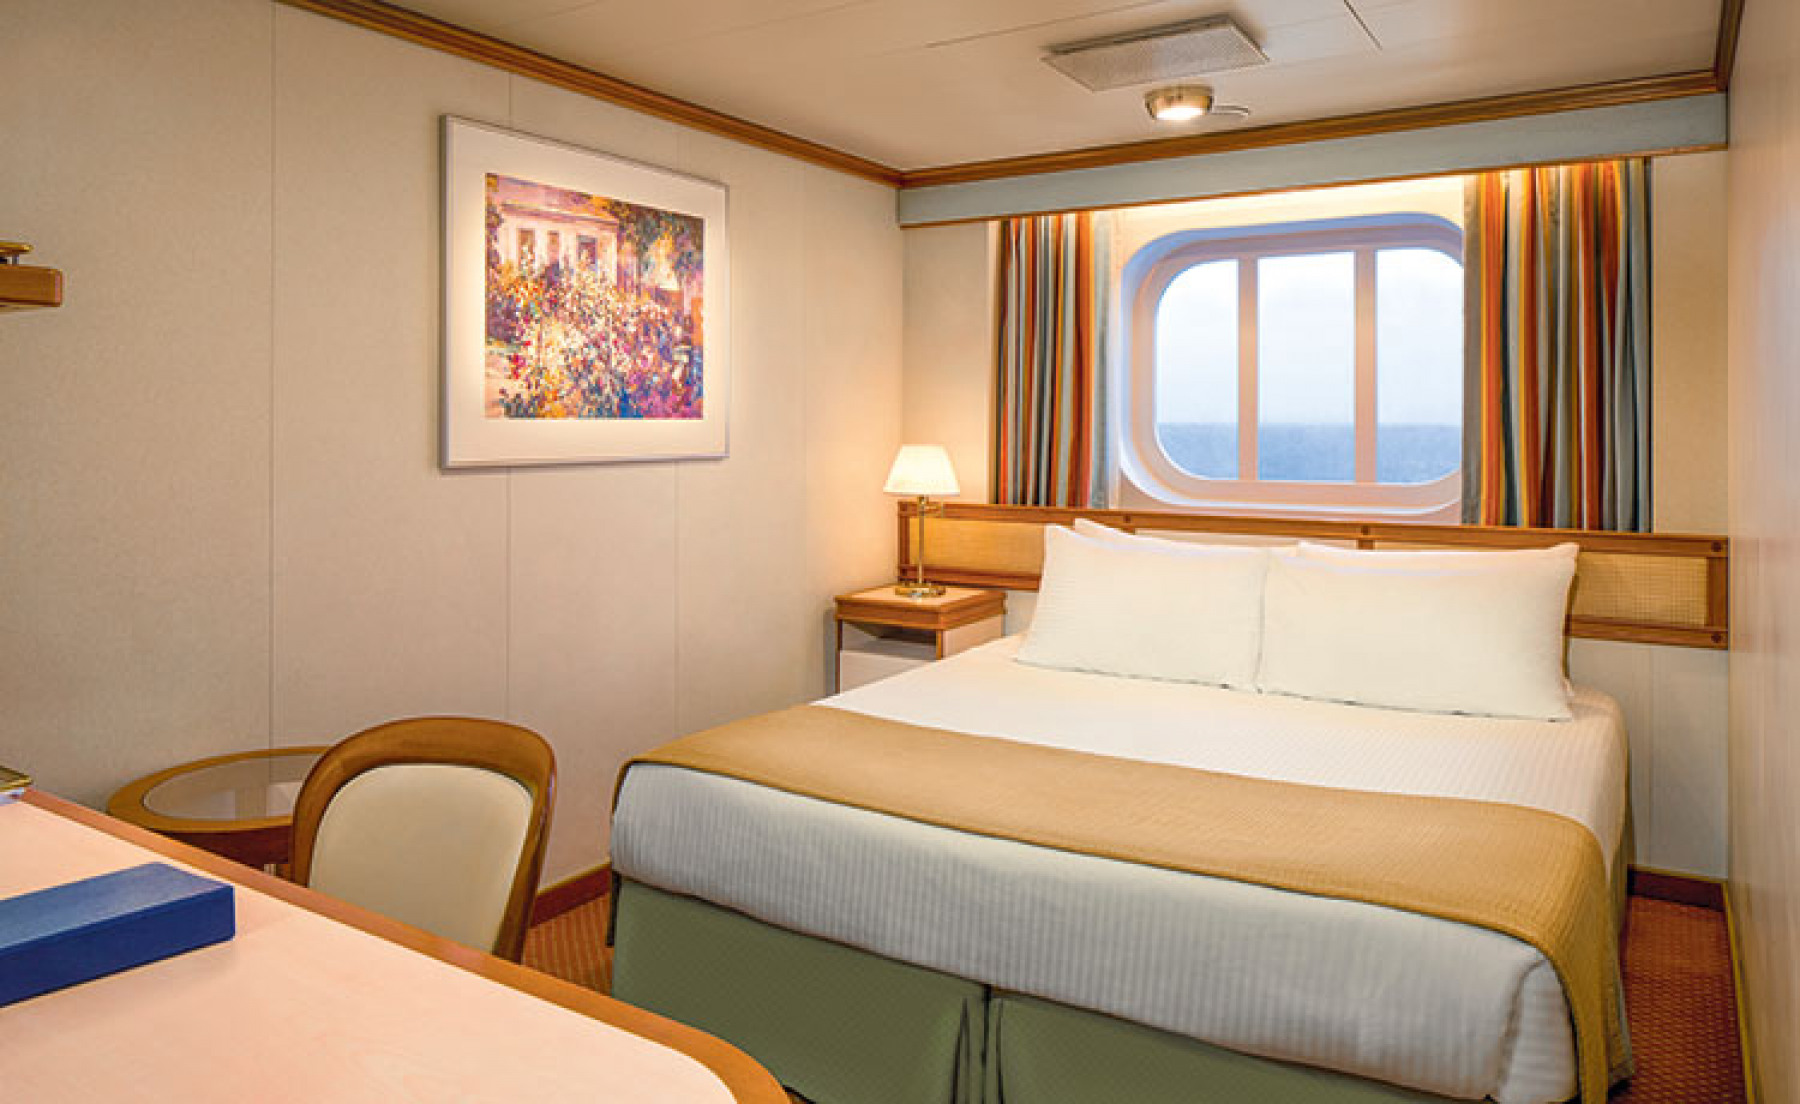 Princess Cruises Ruby Princess Accommodation Oceanview.jpg